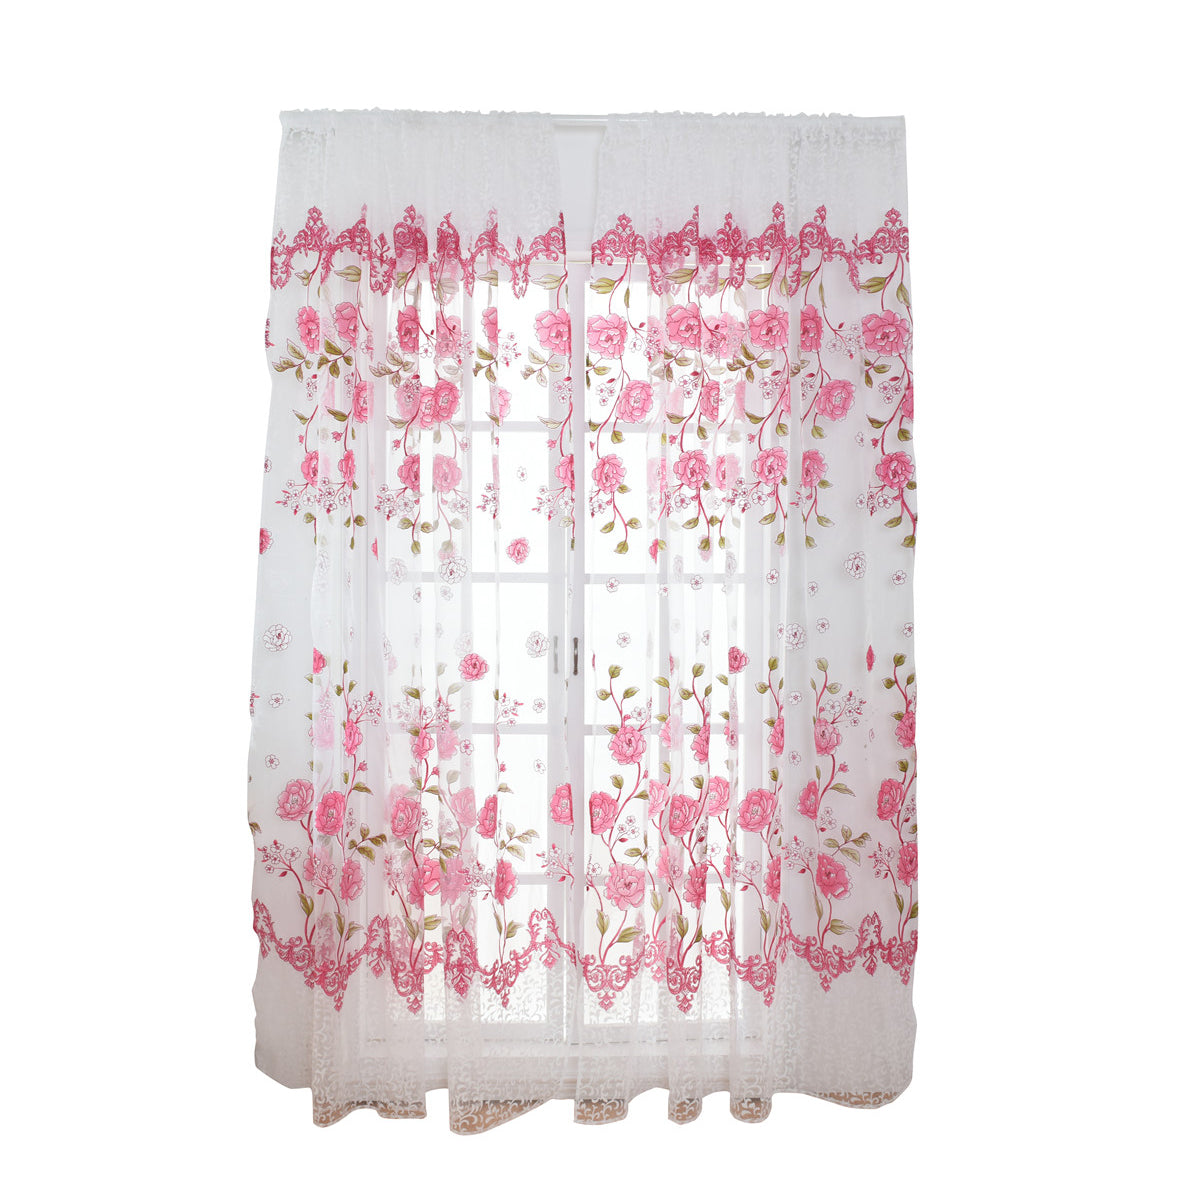 Costbuys  Sheer Floral Curtains Home Decor Window Treatments Modern Curtain Pour Le Salon Window - Red